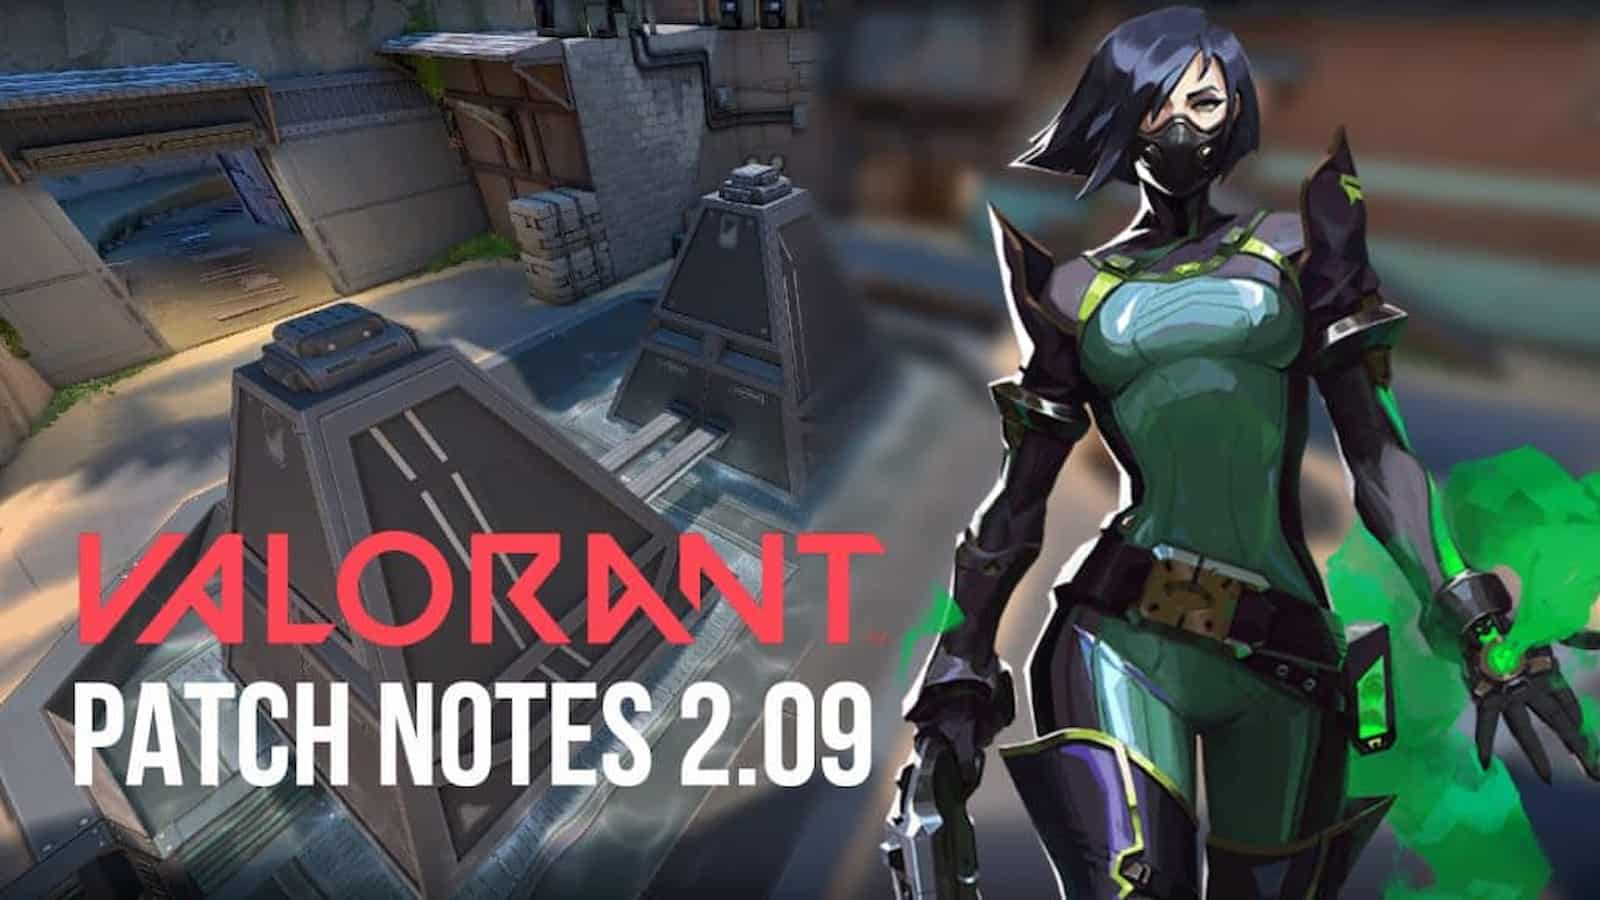 Valorant Patch Notes 2.09